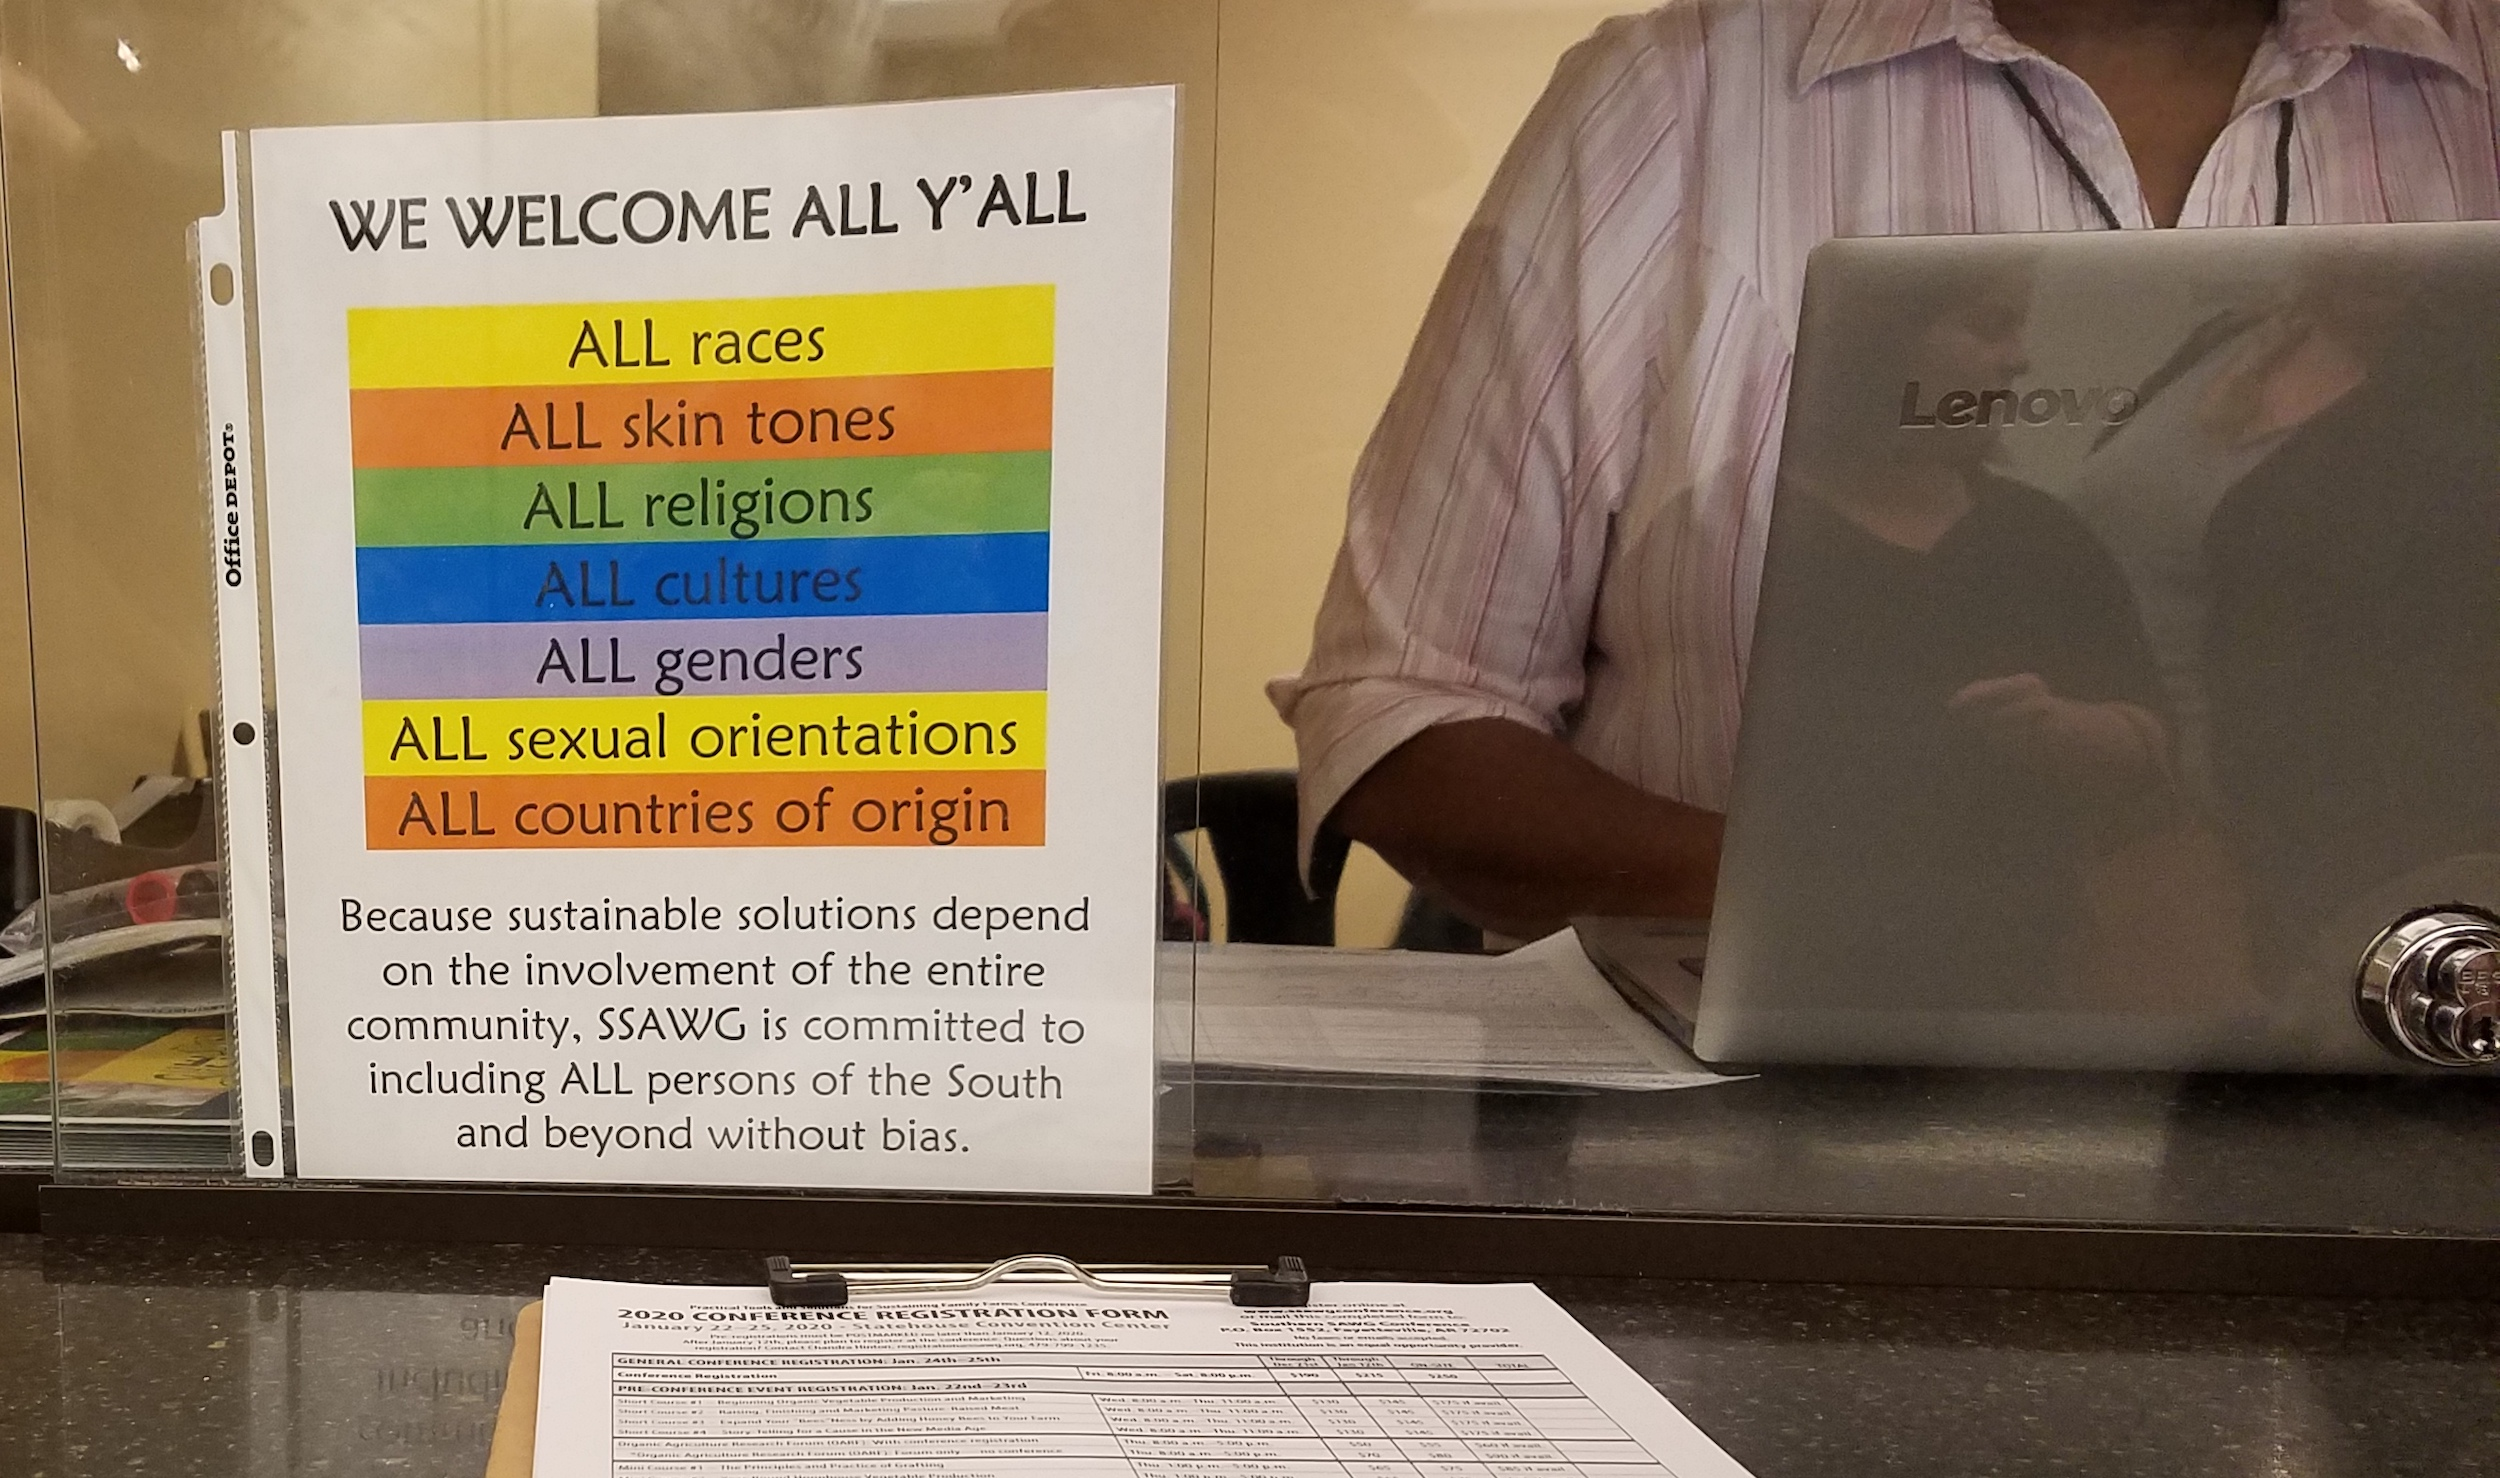 sign at registration welcomes all